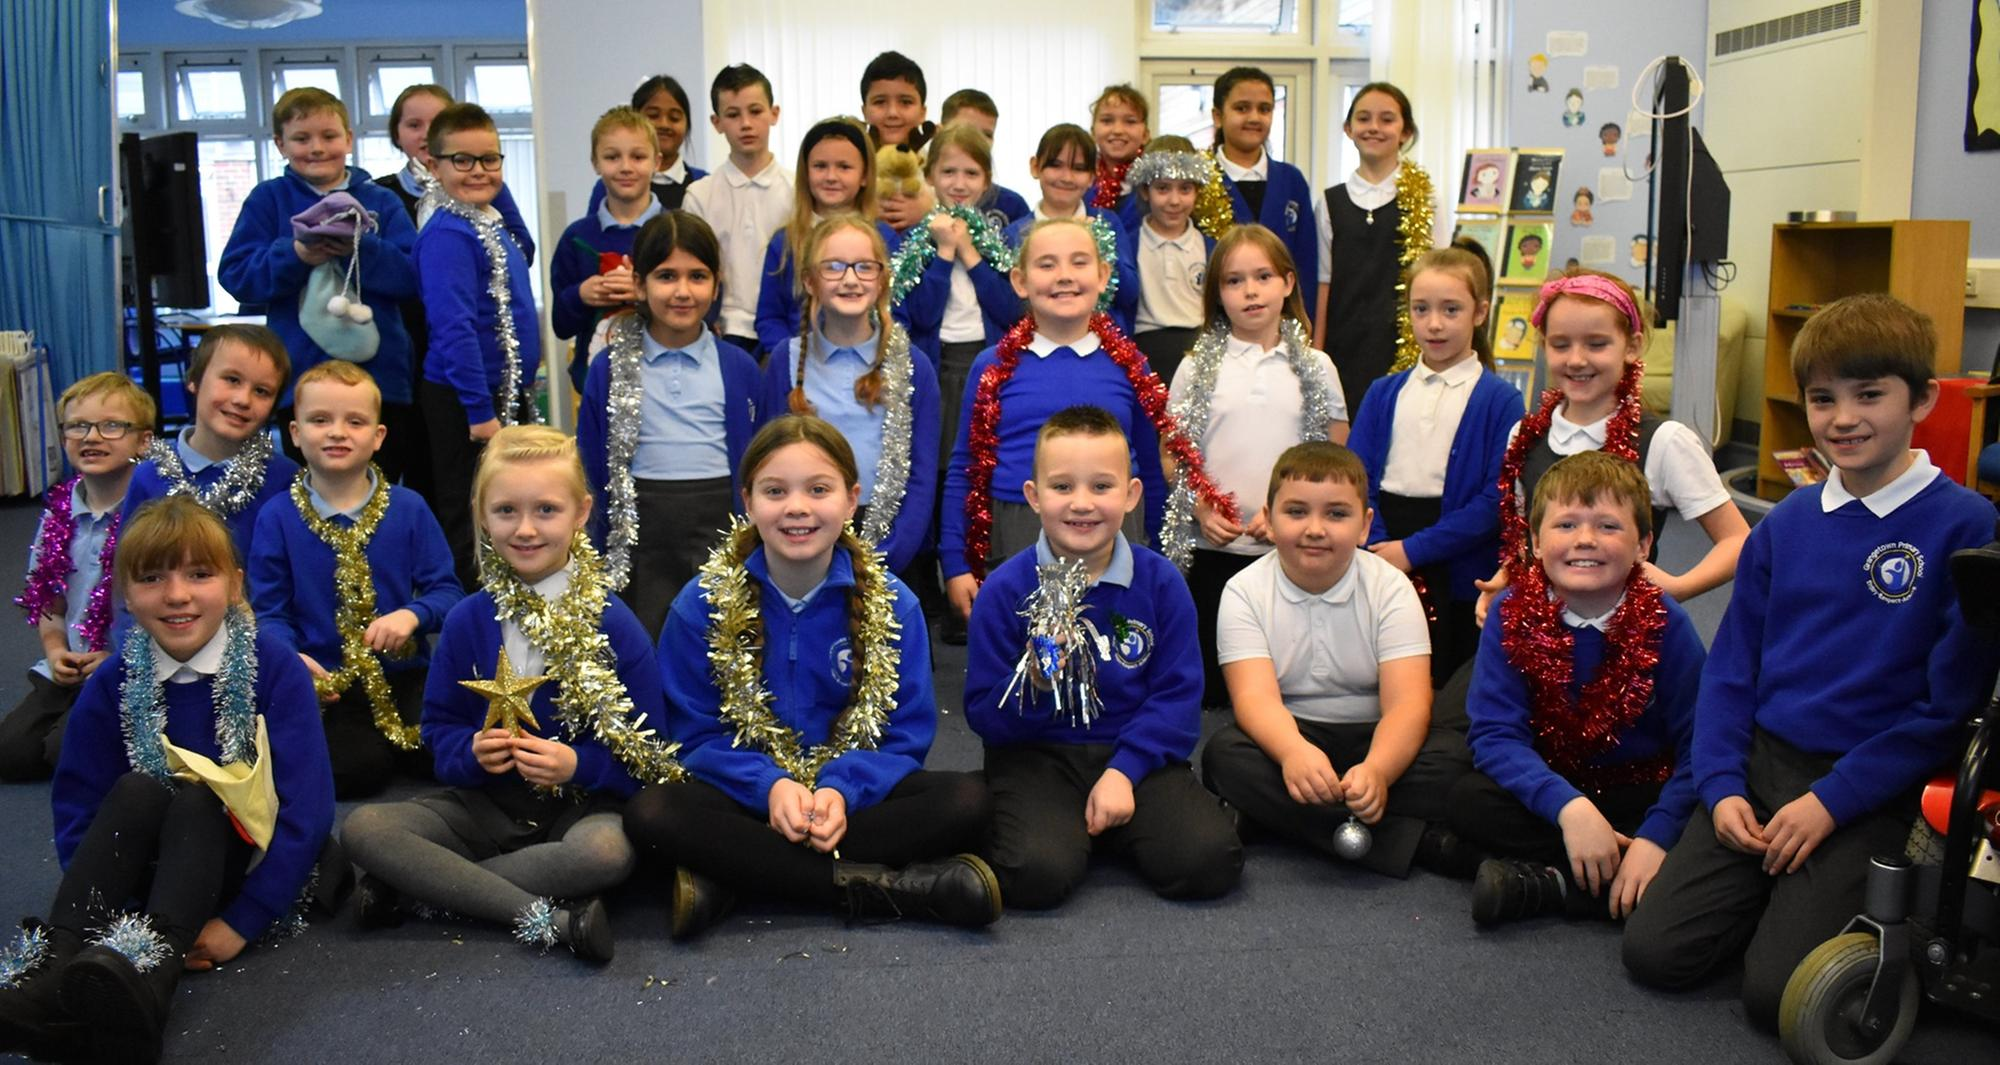 Schools across Sunderland to hit the high note in virtual Christmas concert   Sunderland Echo